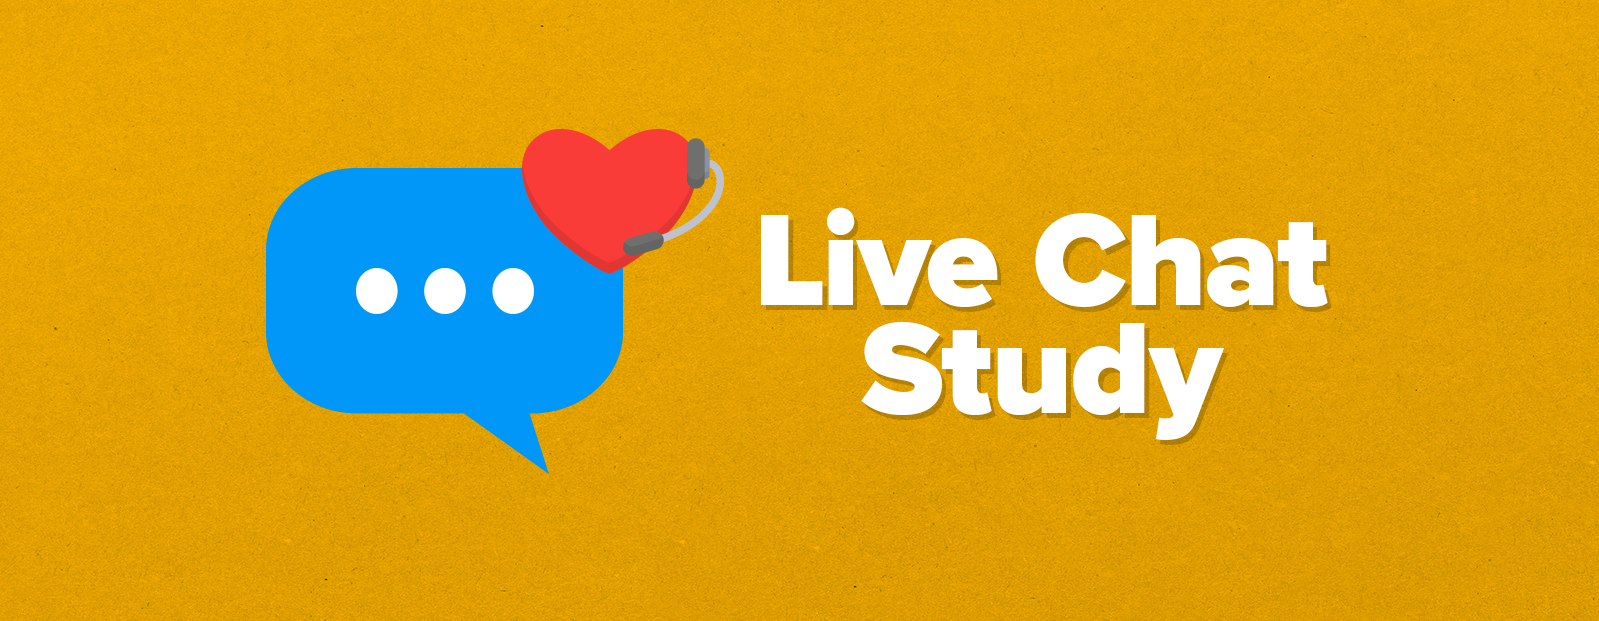 New Research: 21% of Companies Fail to Respond to Live Chat Requests